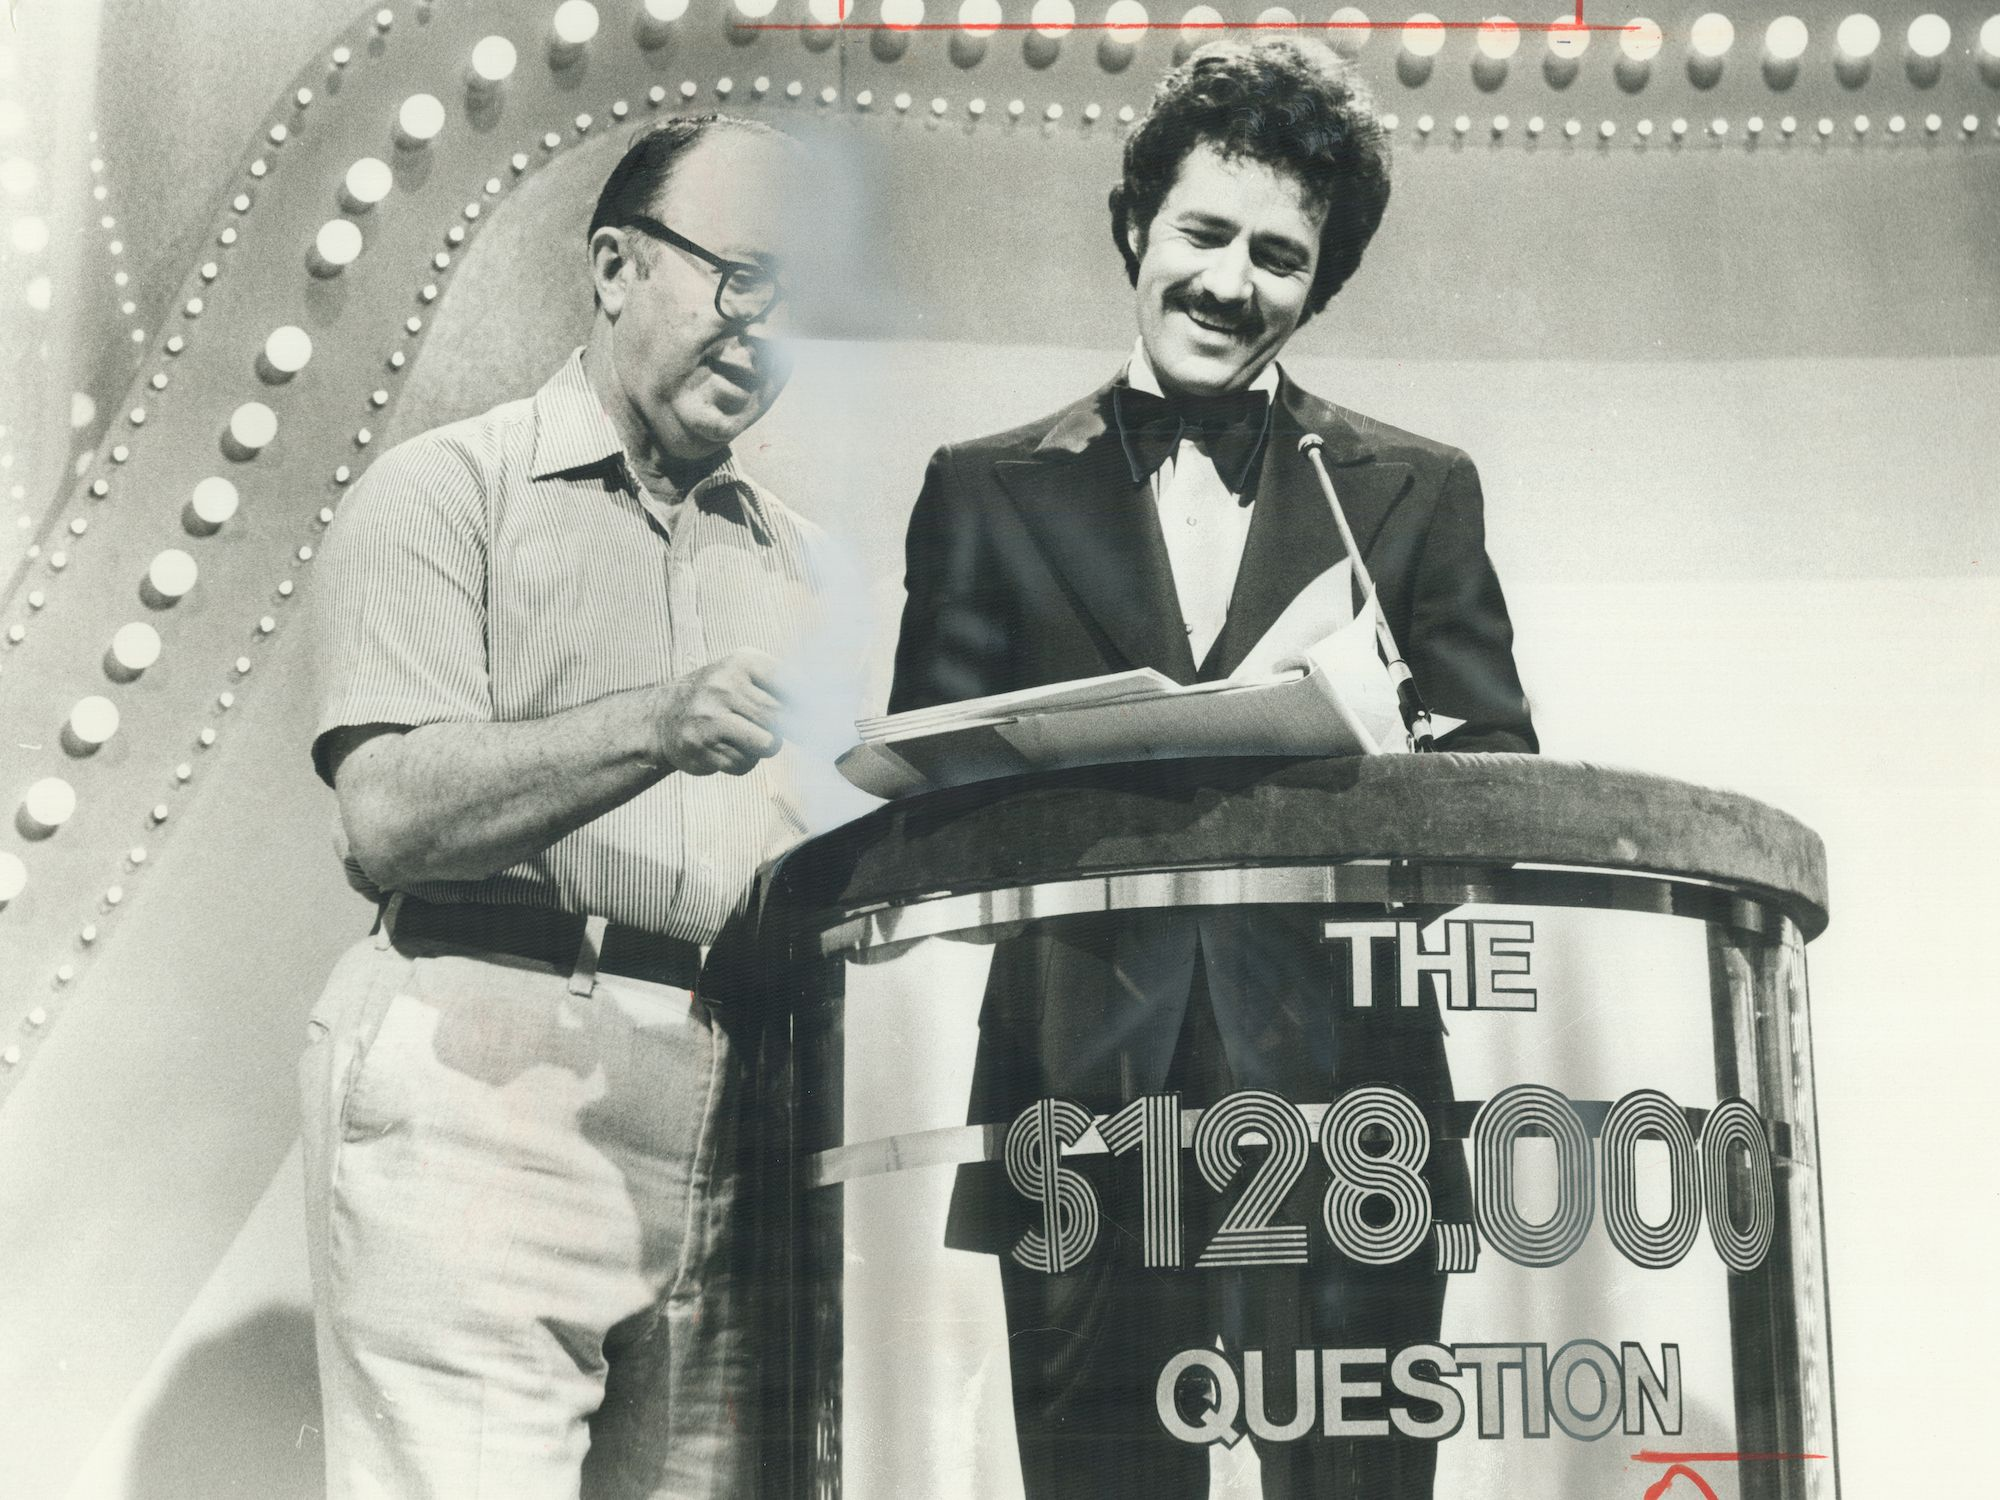 How Alex Trebek Got Started on 'Jeopardy!' and Earned His